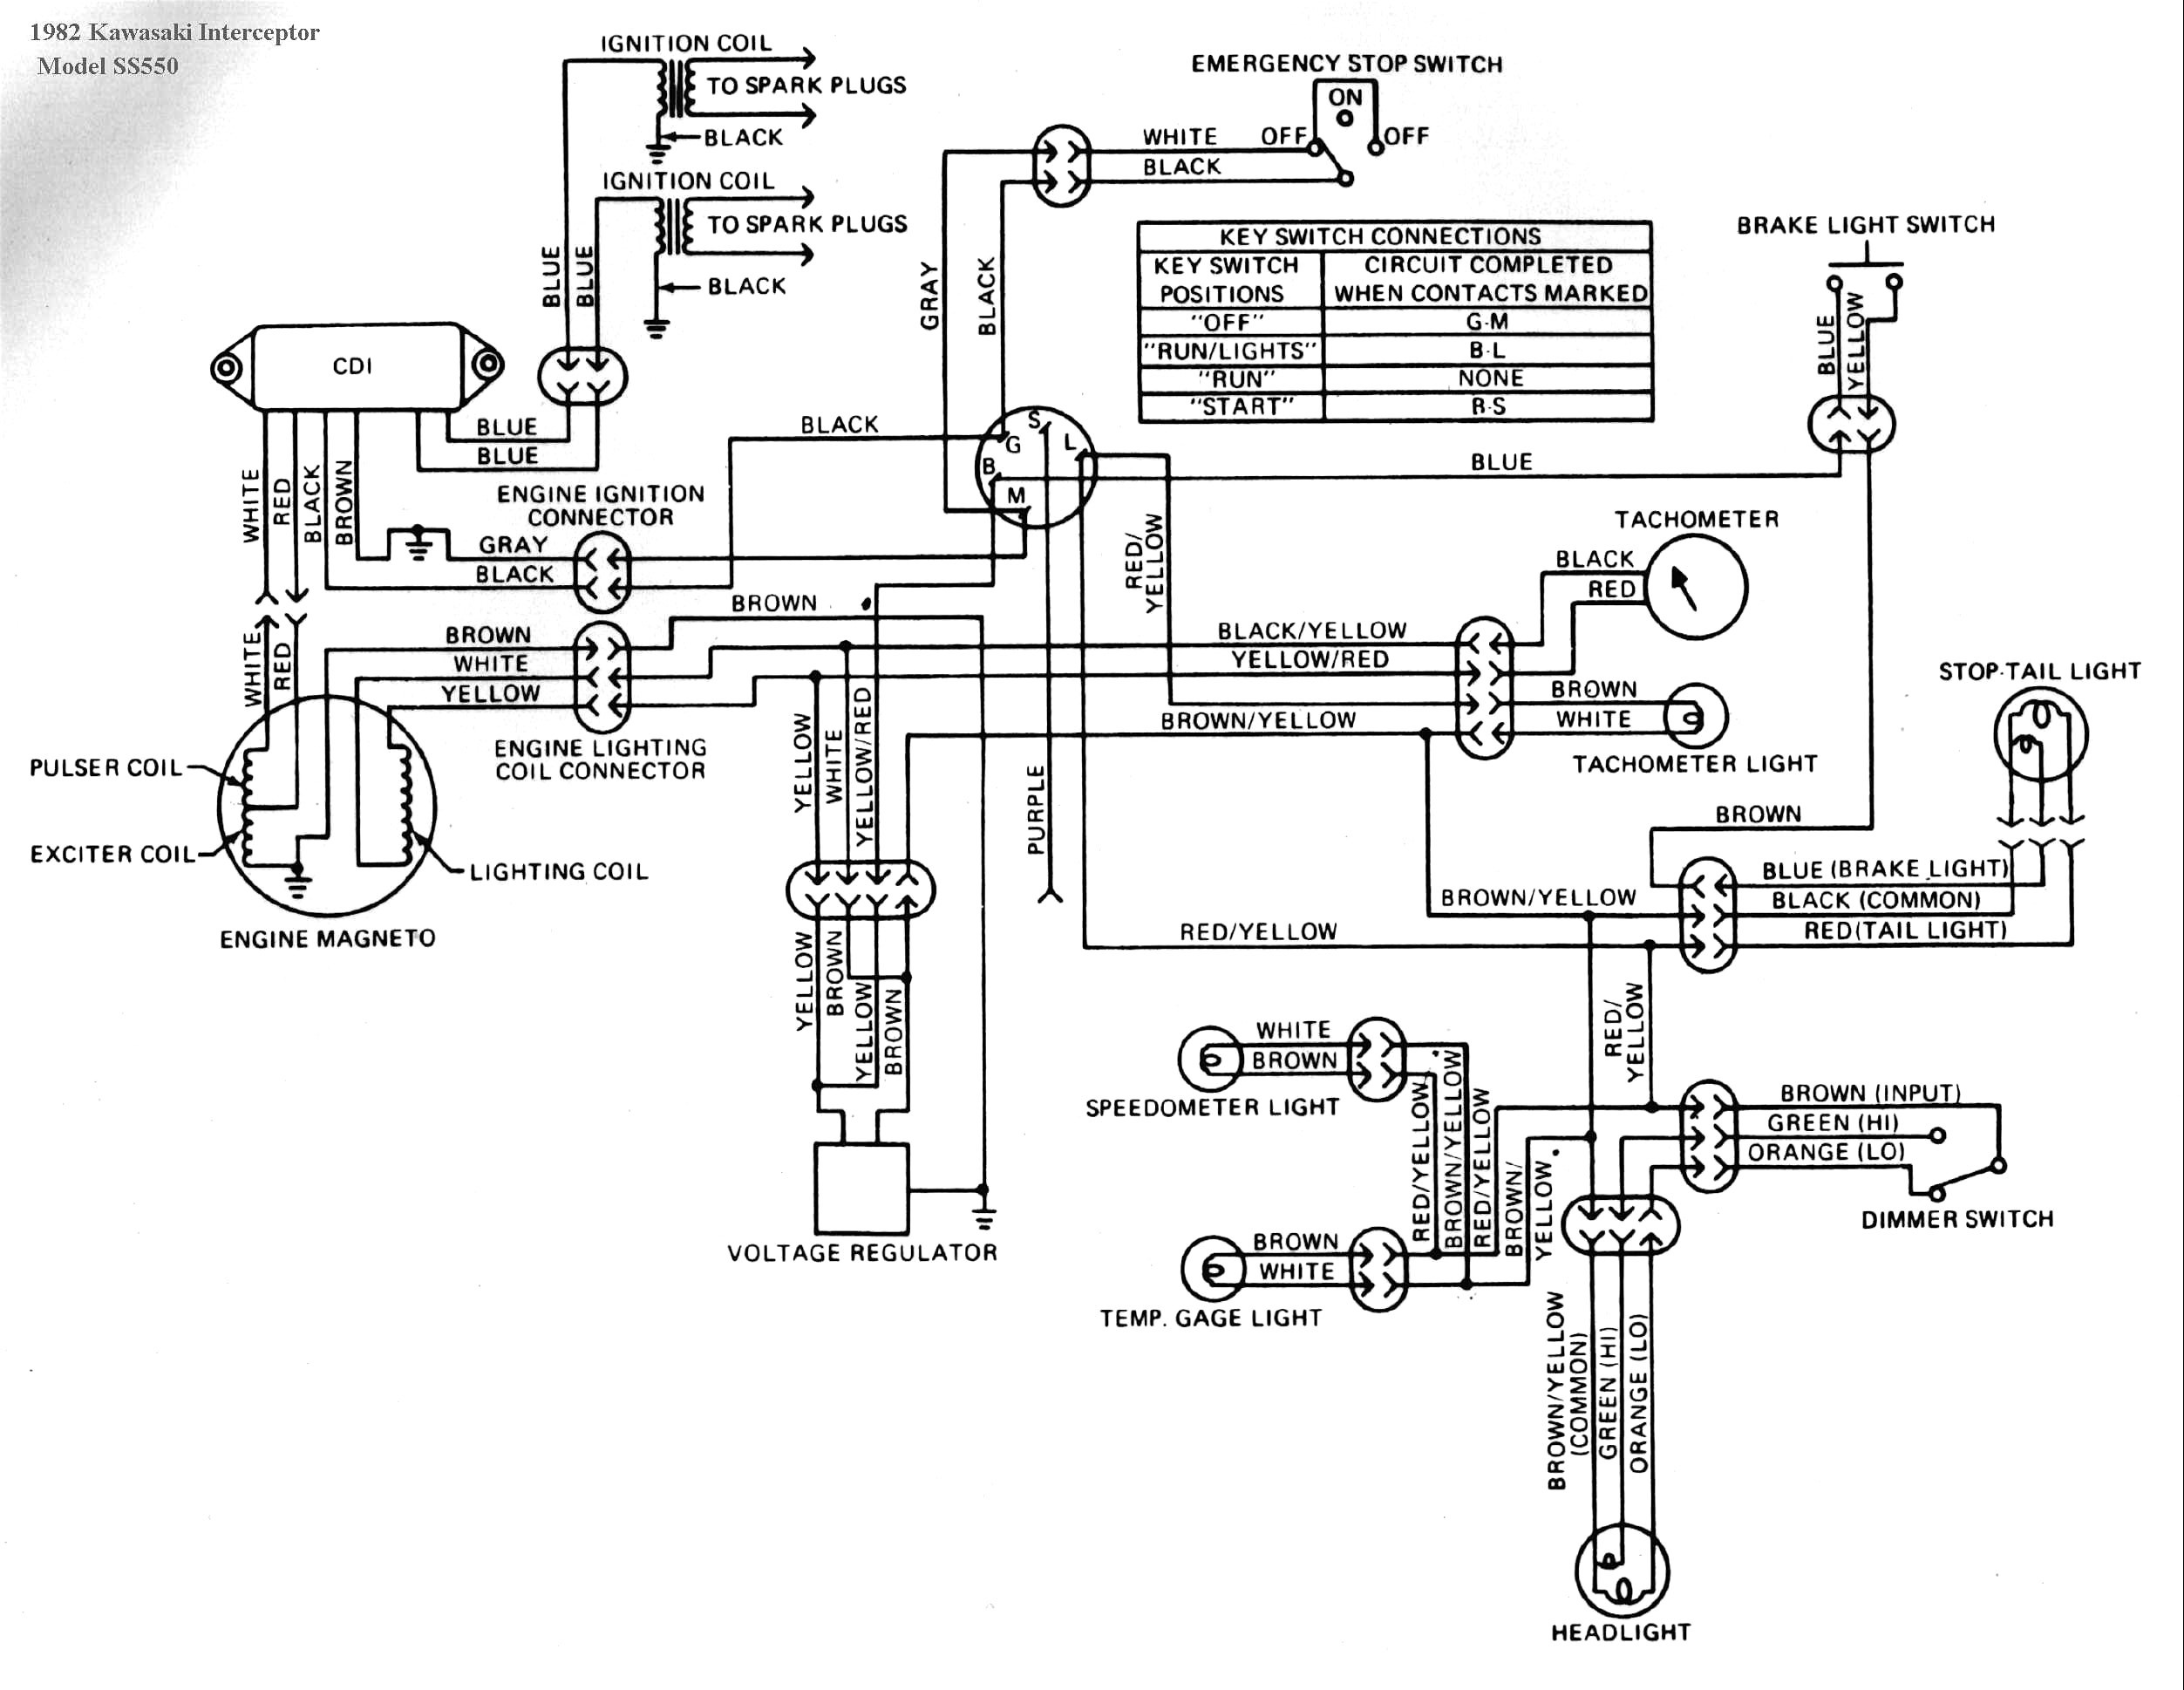 wiring diagram electrical of kawasaki klt 200 wiring diagram rh 0 uaasobvw phototek de